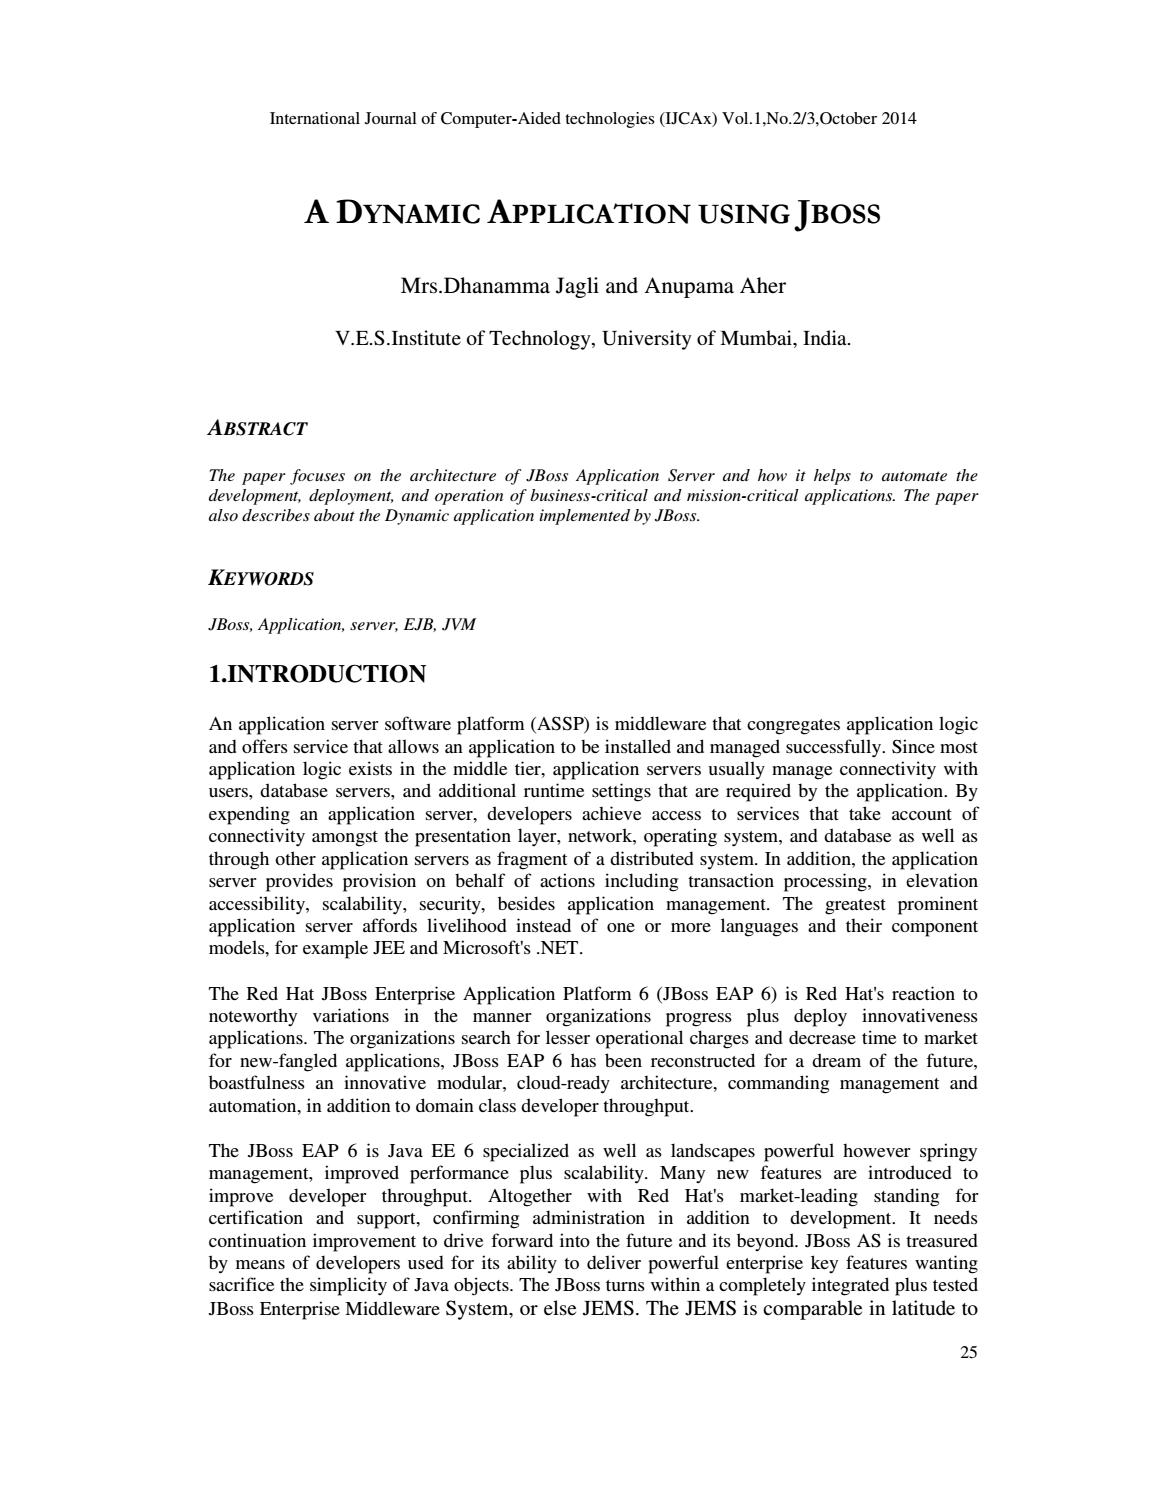 A DYNAMIC APPLICATION USING JBOSS by IJCAx - issuu